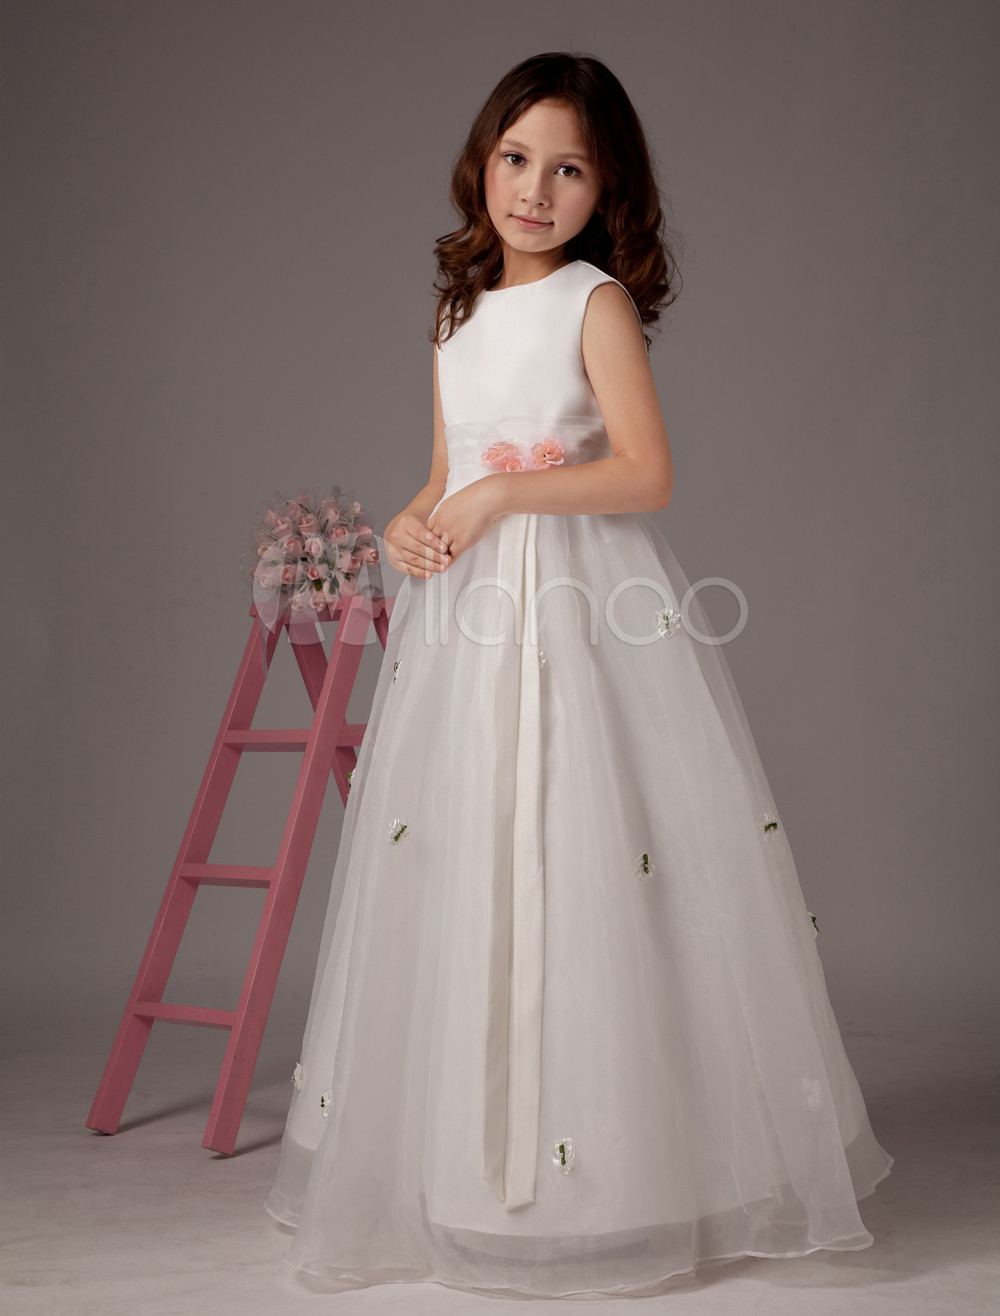 White Sleeveless Flower Decroration Satin Organza Flower Girl Dress